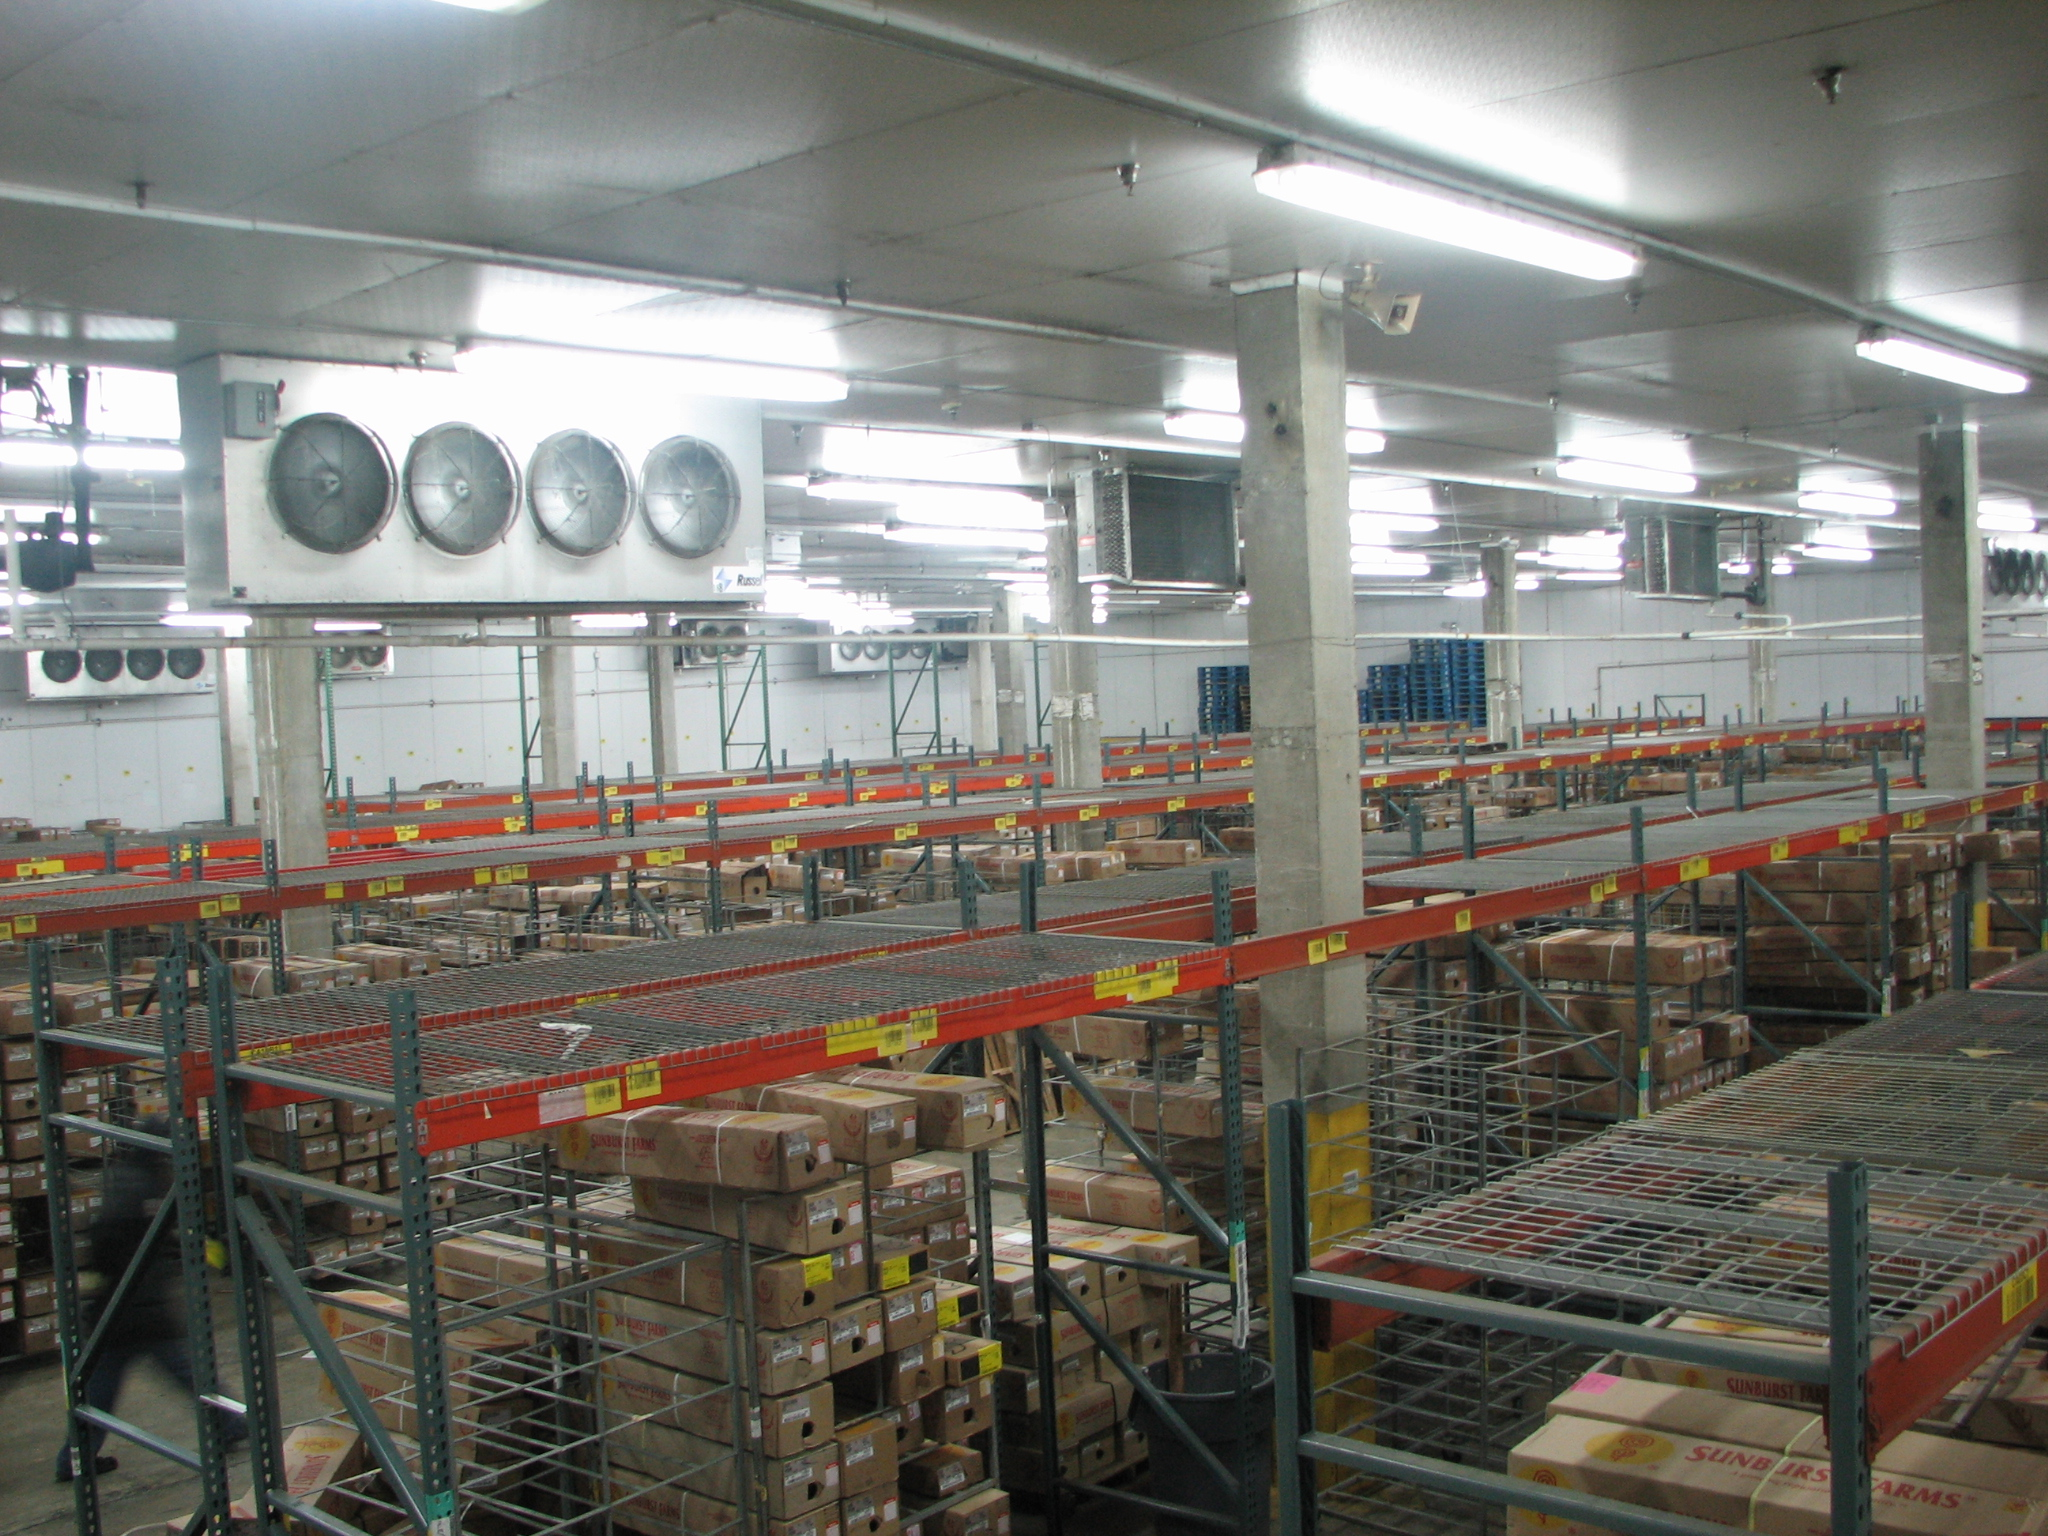 refrigerated warehouse in miami